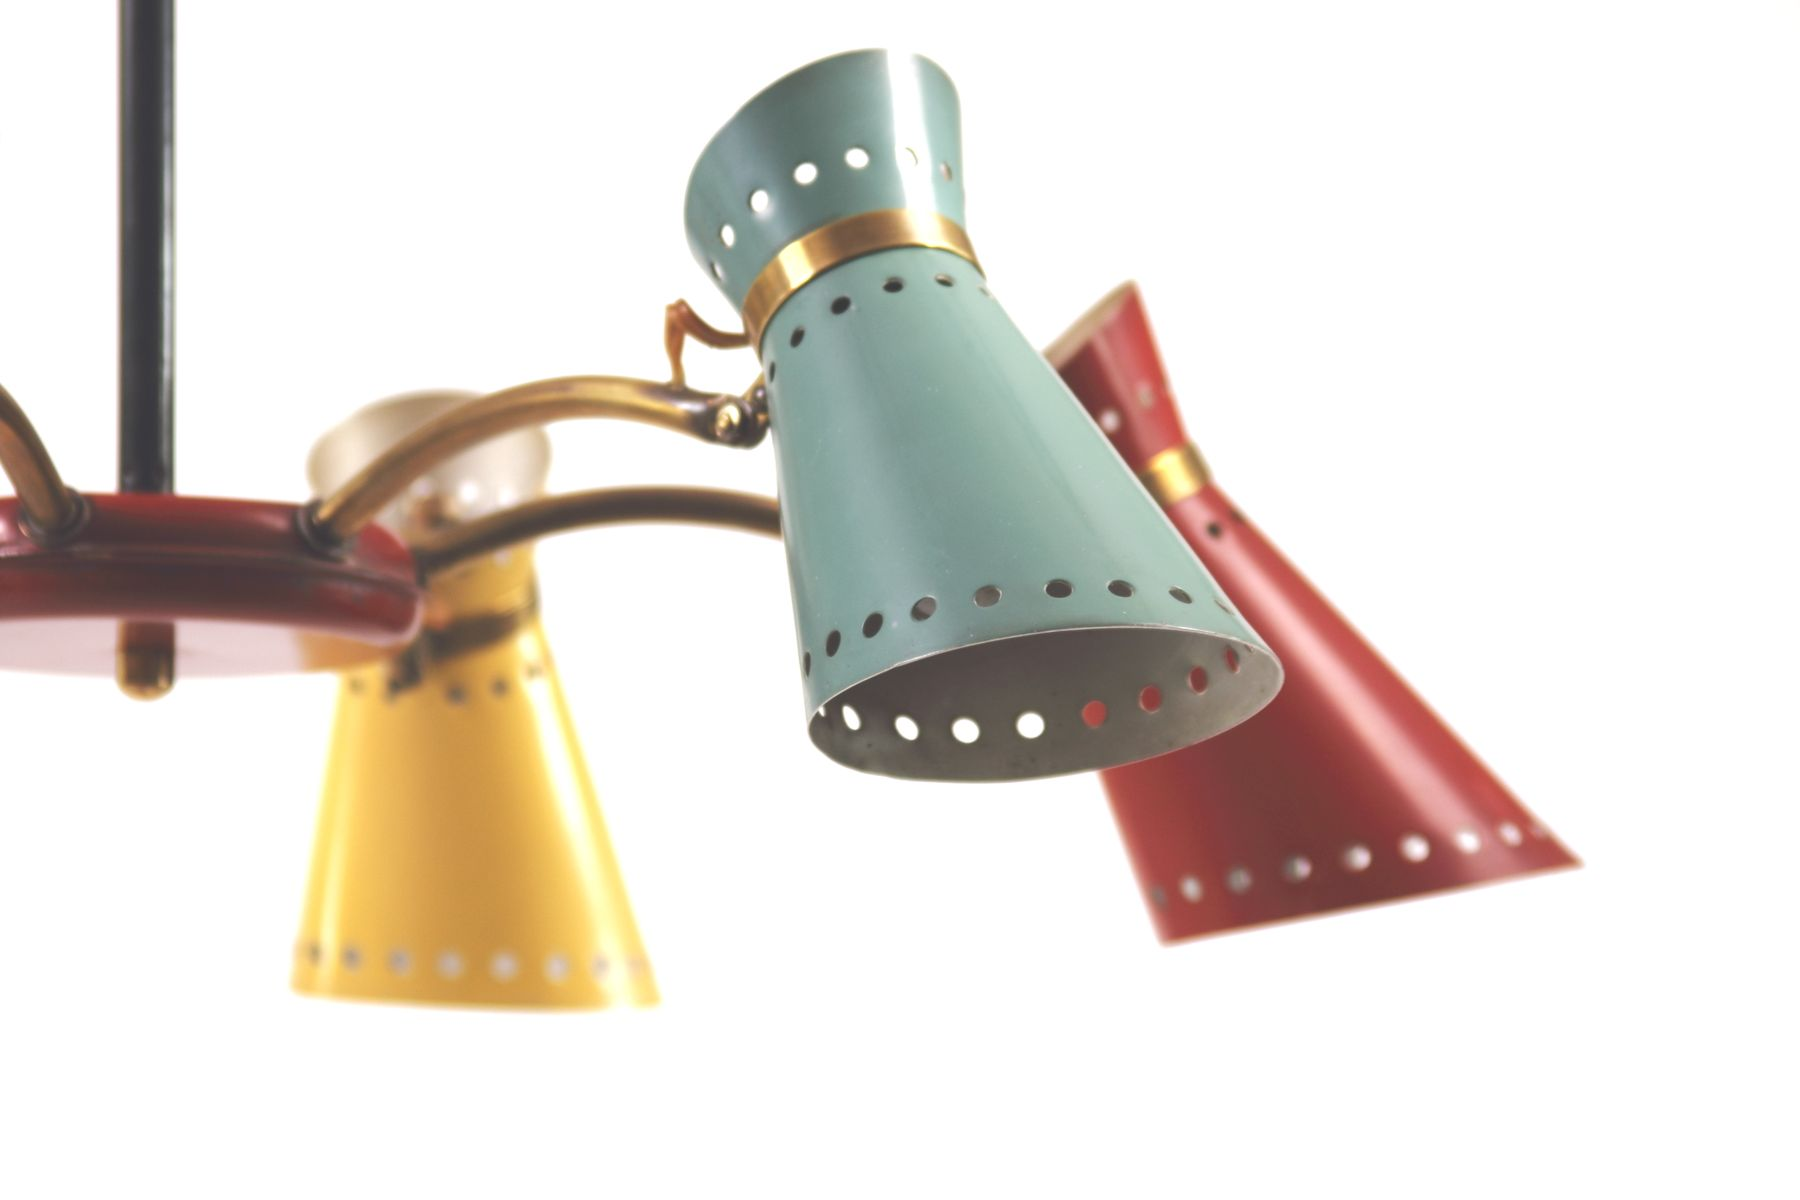 Lampe suspension diabolo vintage par pierre guariche pour stilnovo france - Lampe suspension vintage ...